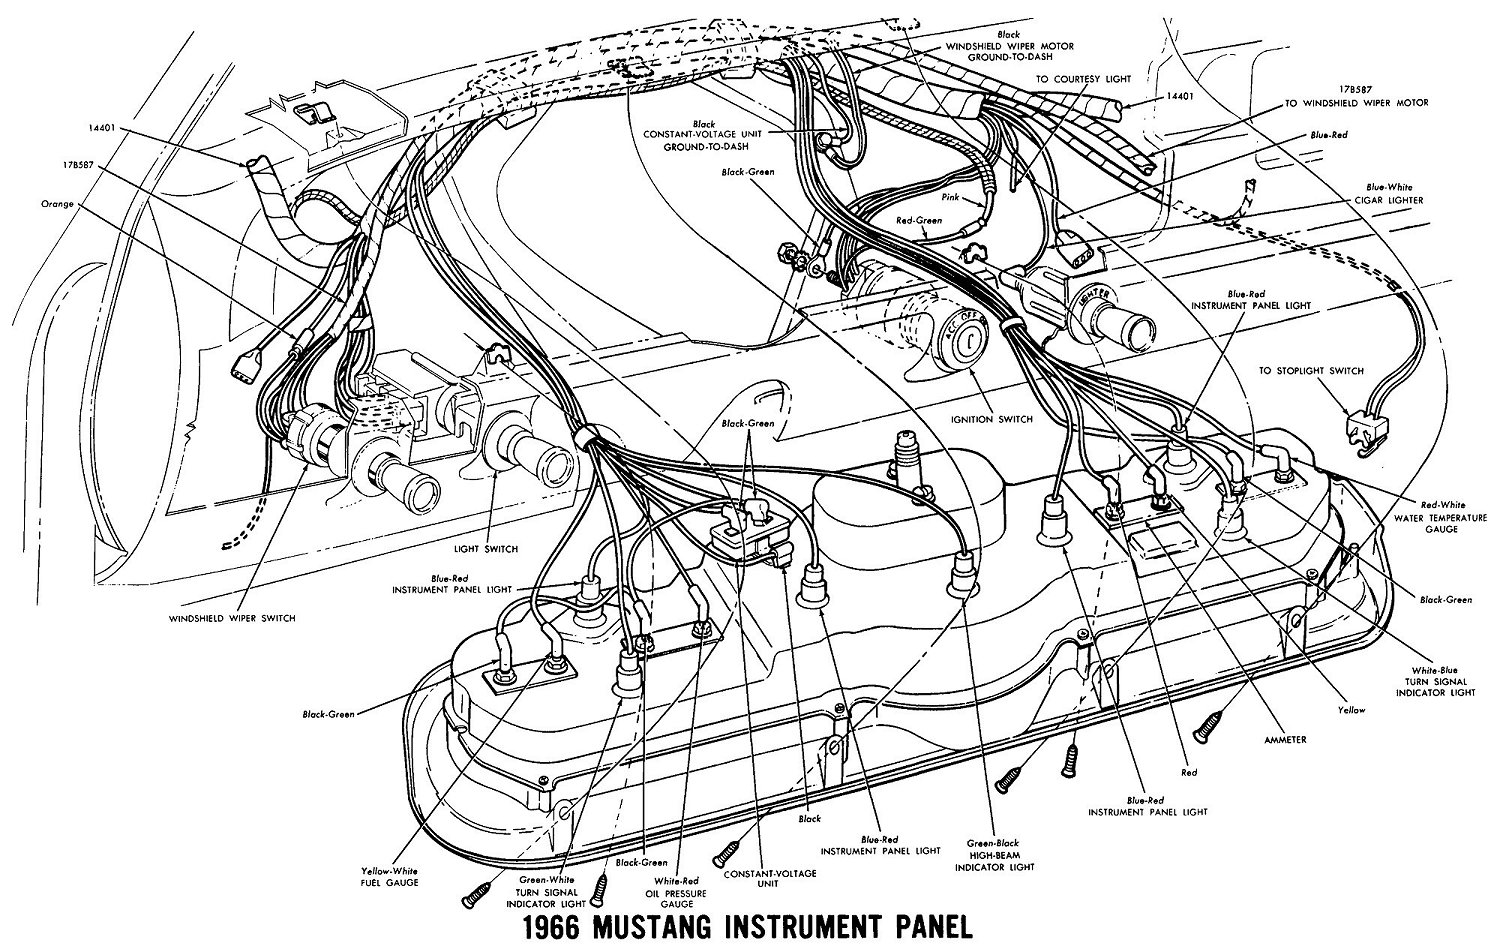 1966 Mustang Engine Diagram - Wiring Diagrams User